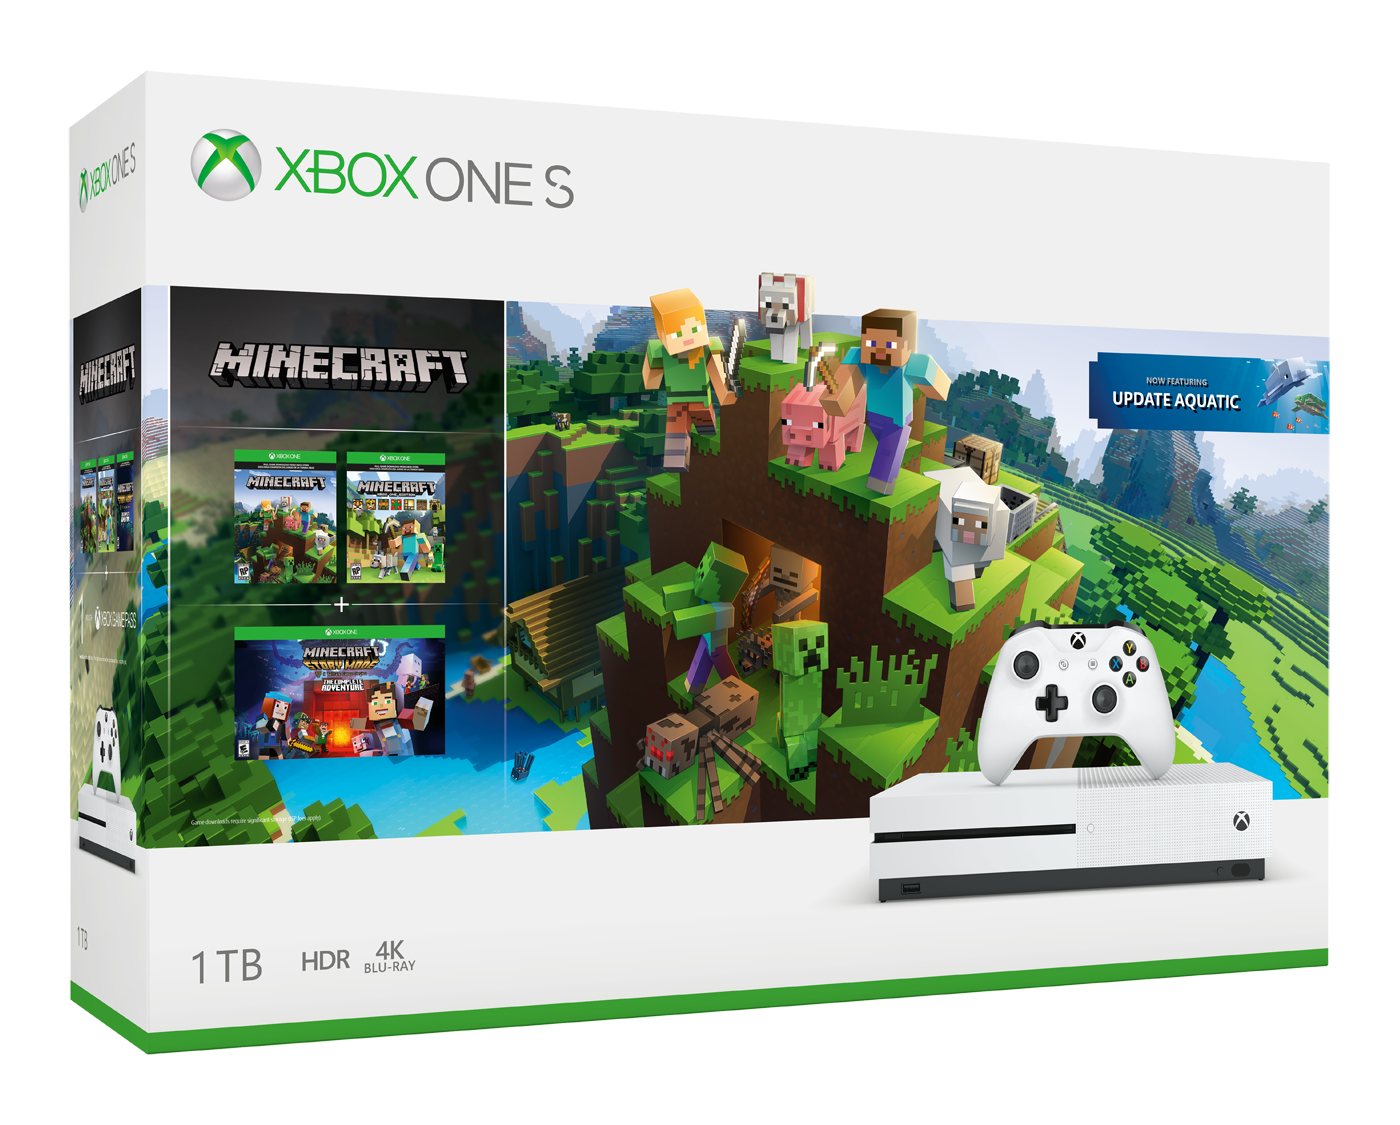 XBOX ONE S 1 TB + Minecraft + Explorer's Pack + Minecraft: Story Mode - The Complete Adventure